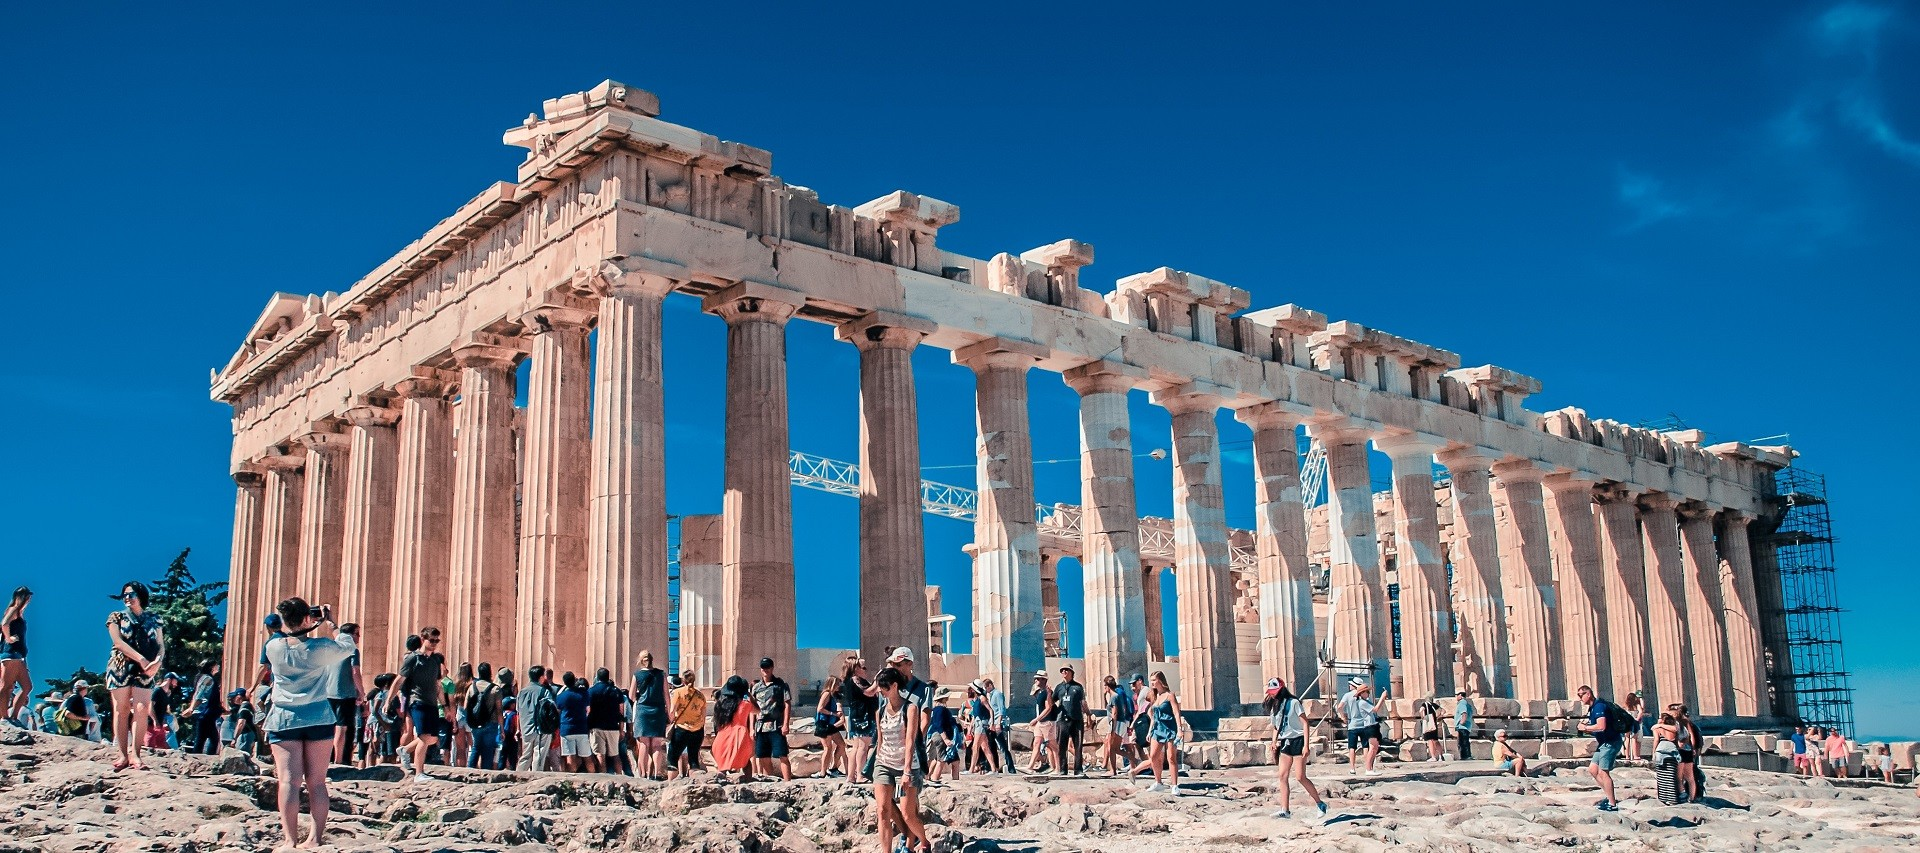 Skip the Line: Acropolis, Acropolis Museum & Temple of Poseidon Tour including Lunch